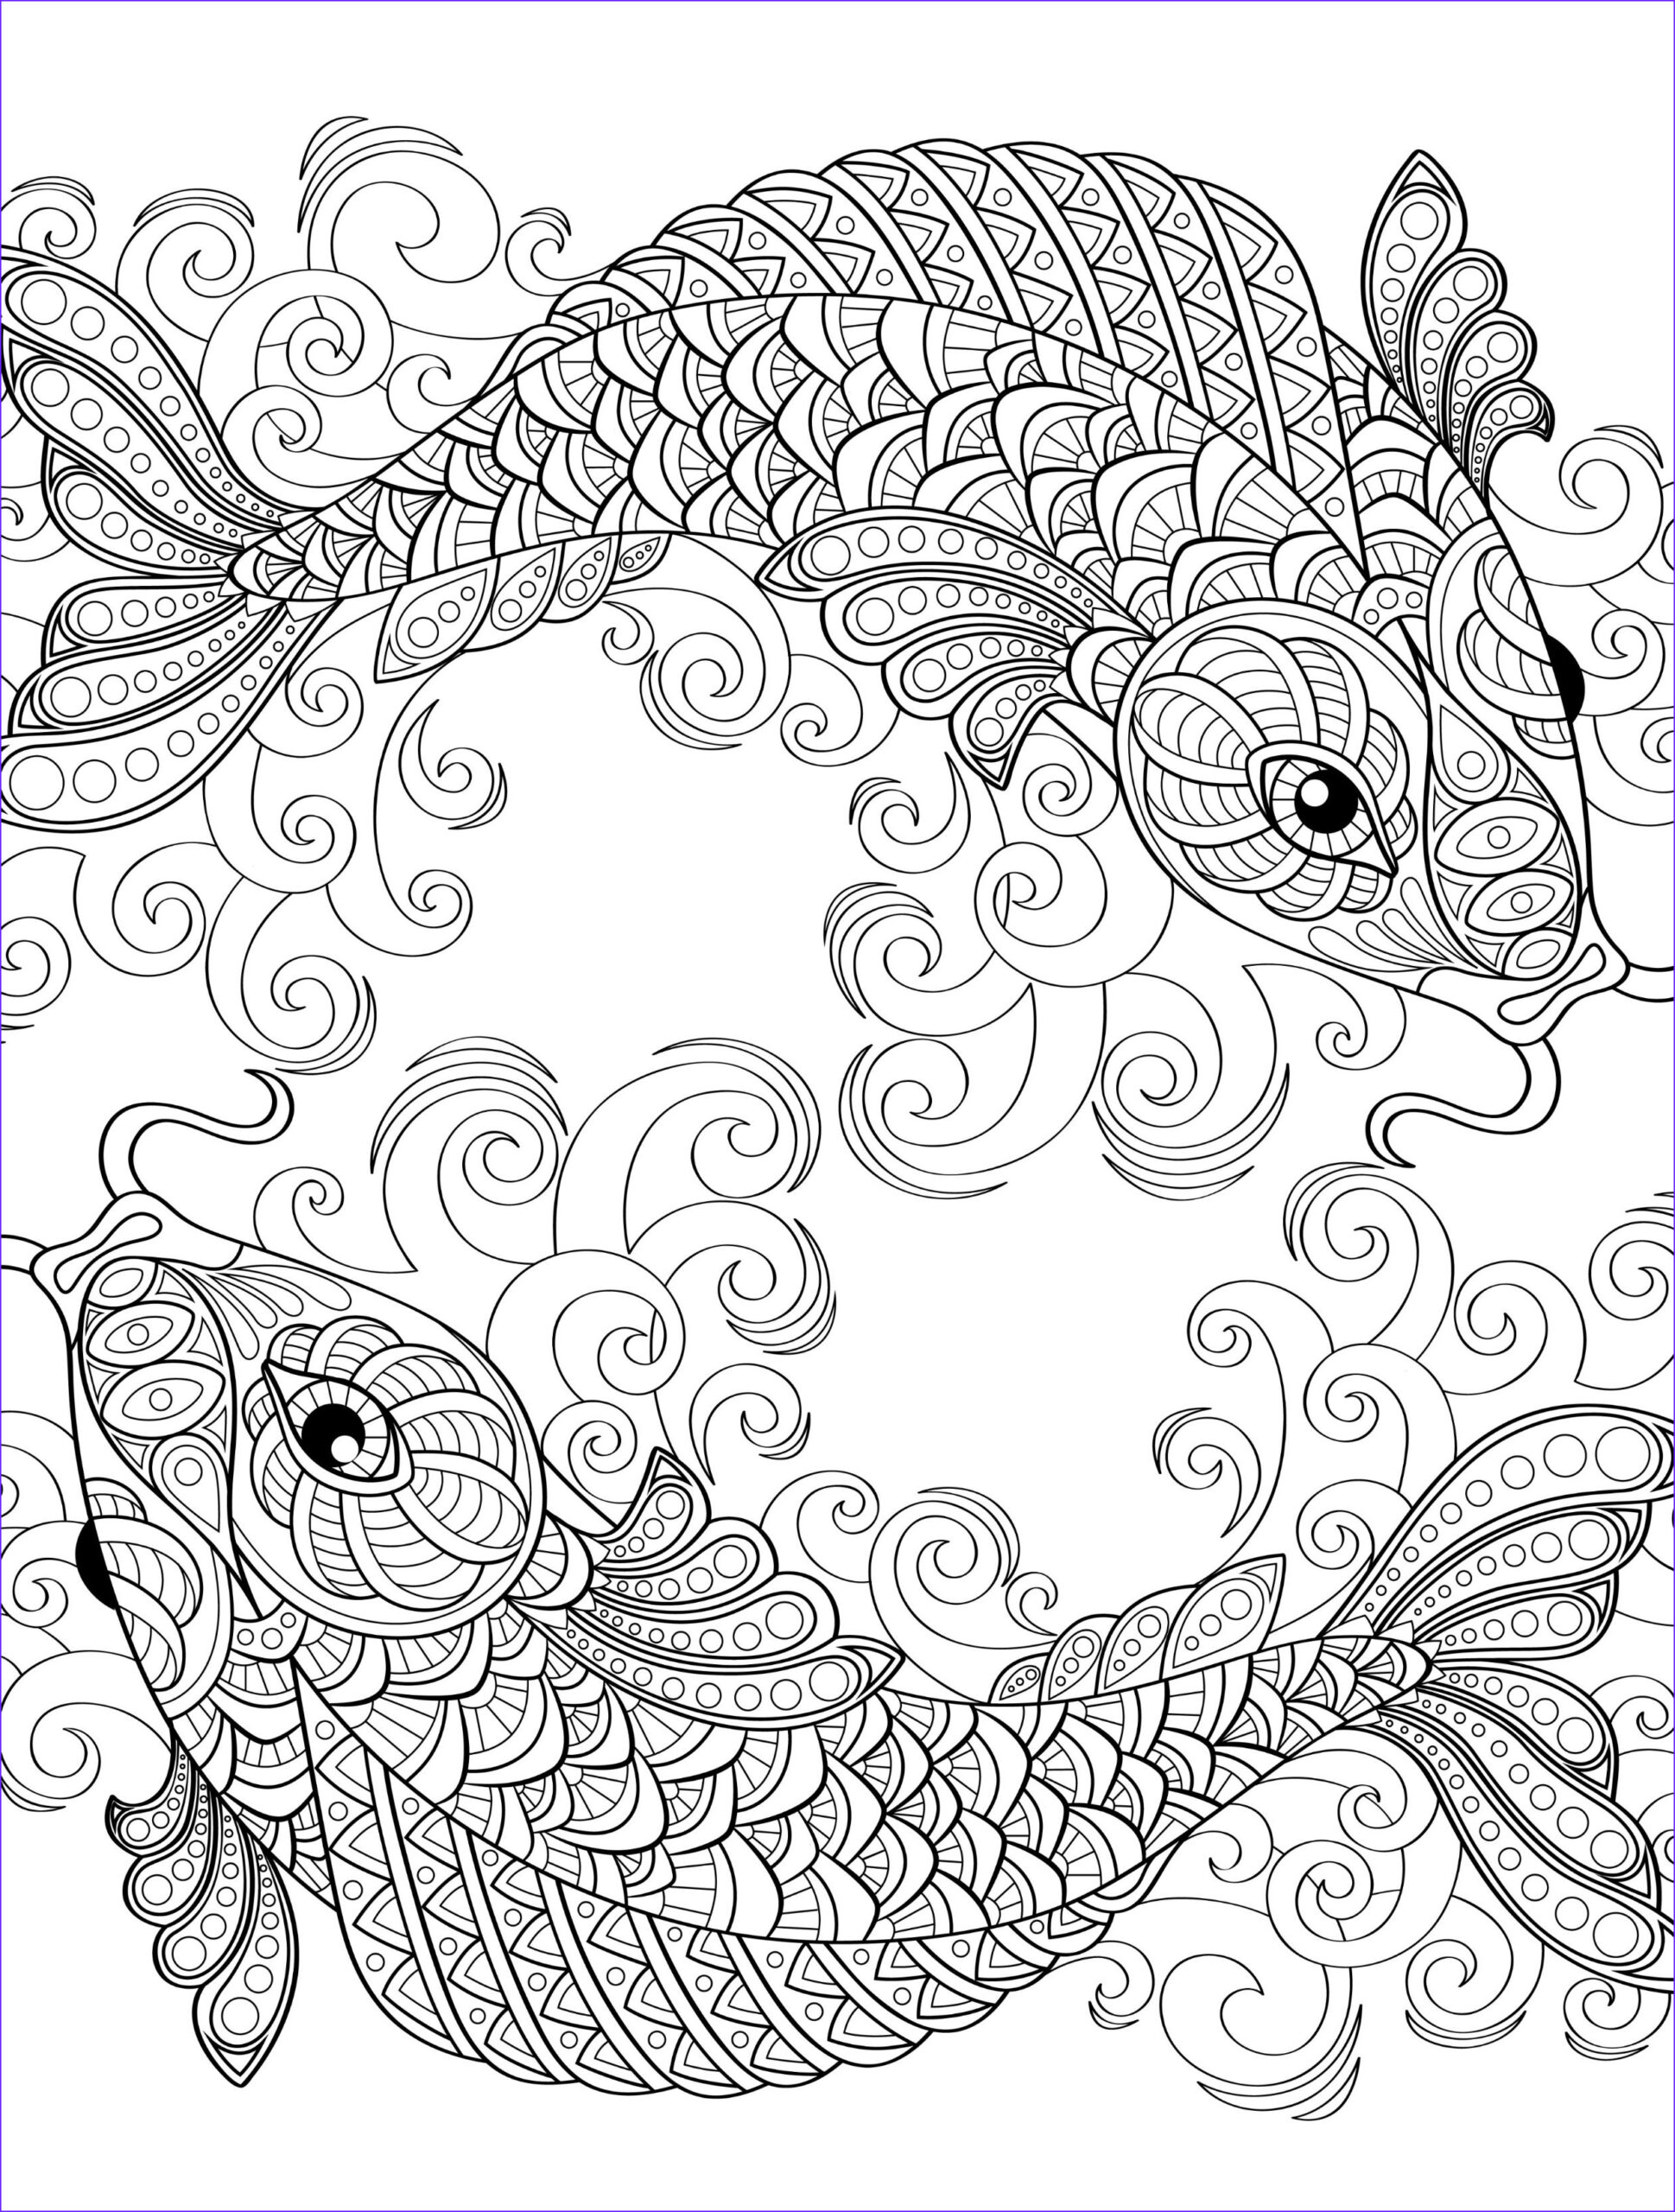 Coloring Pages Adults Luxury Collection Pin On Coloring